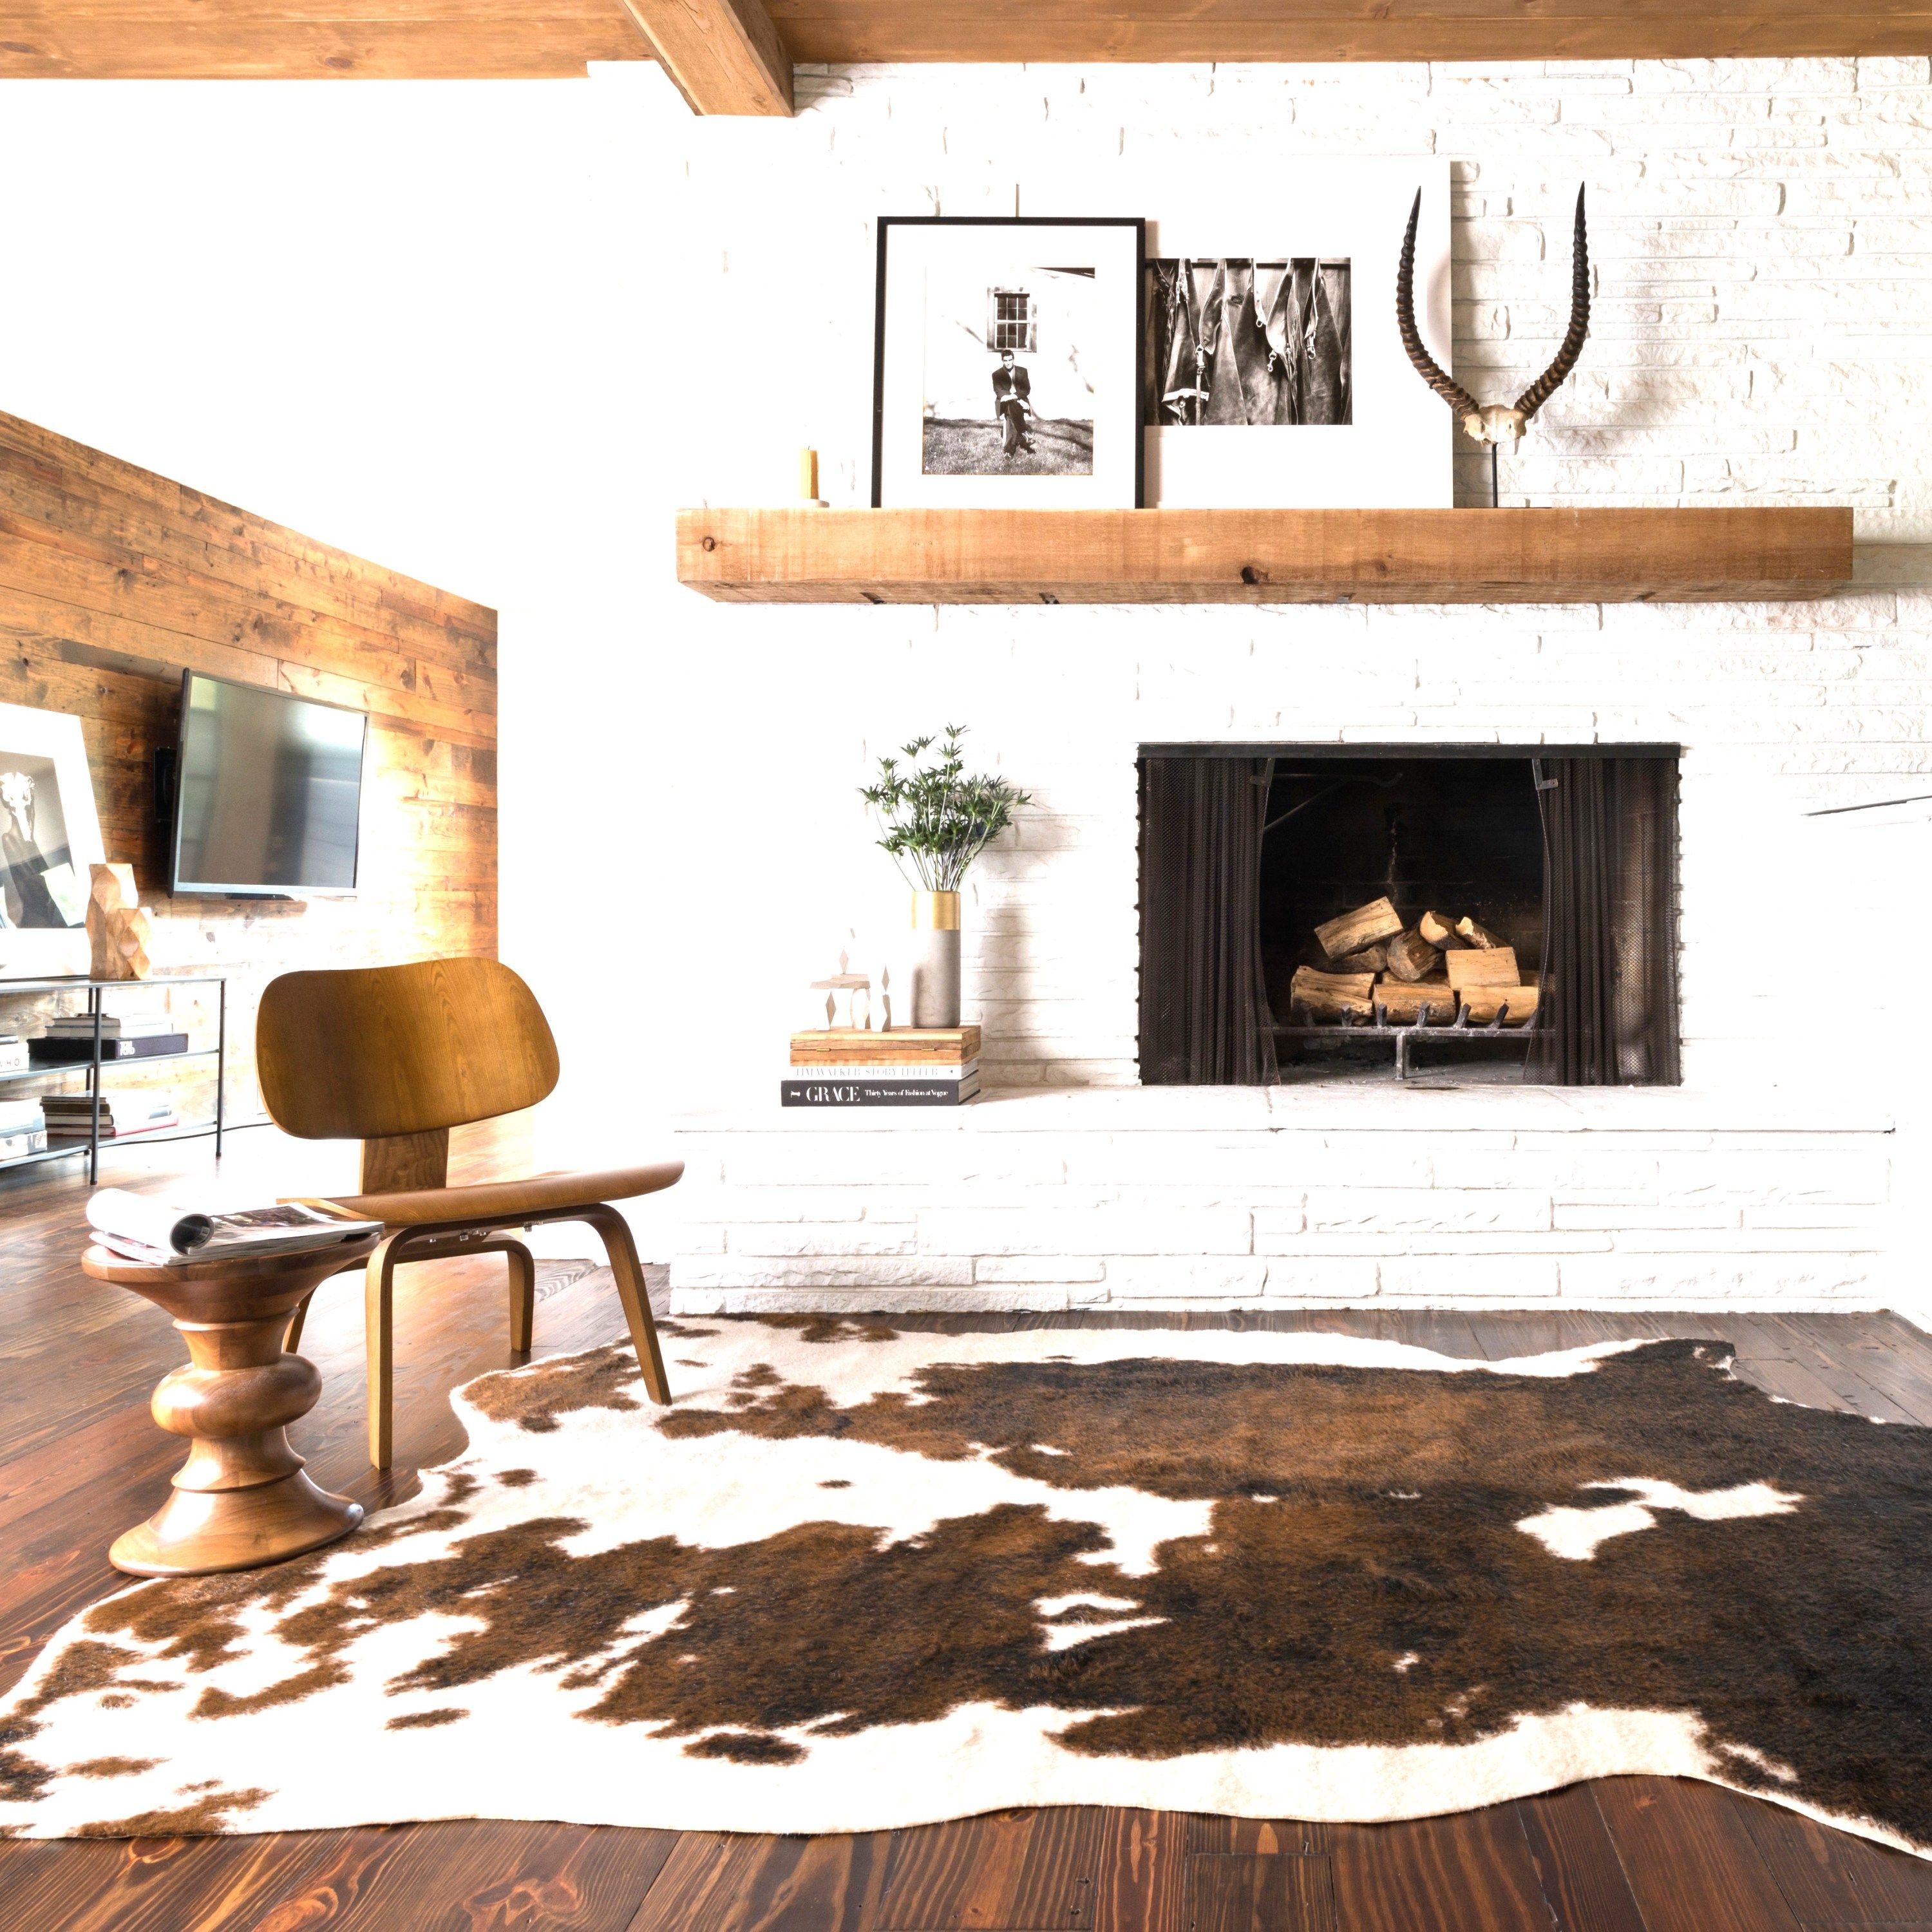 Tricolour Cowhide Rug With Wood Accent Furniture And Wood Panel Wall  (scheduled Via ...